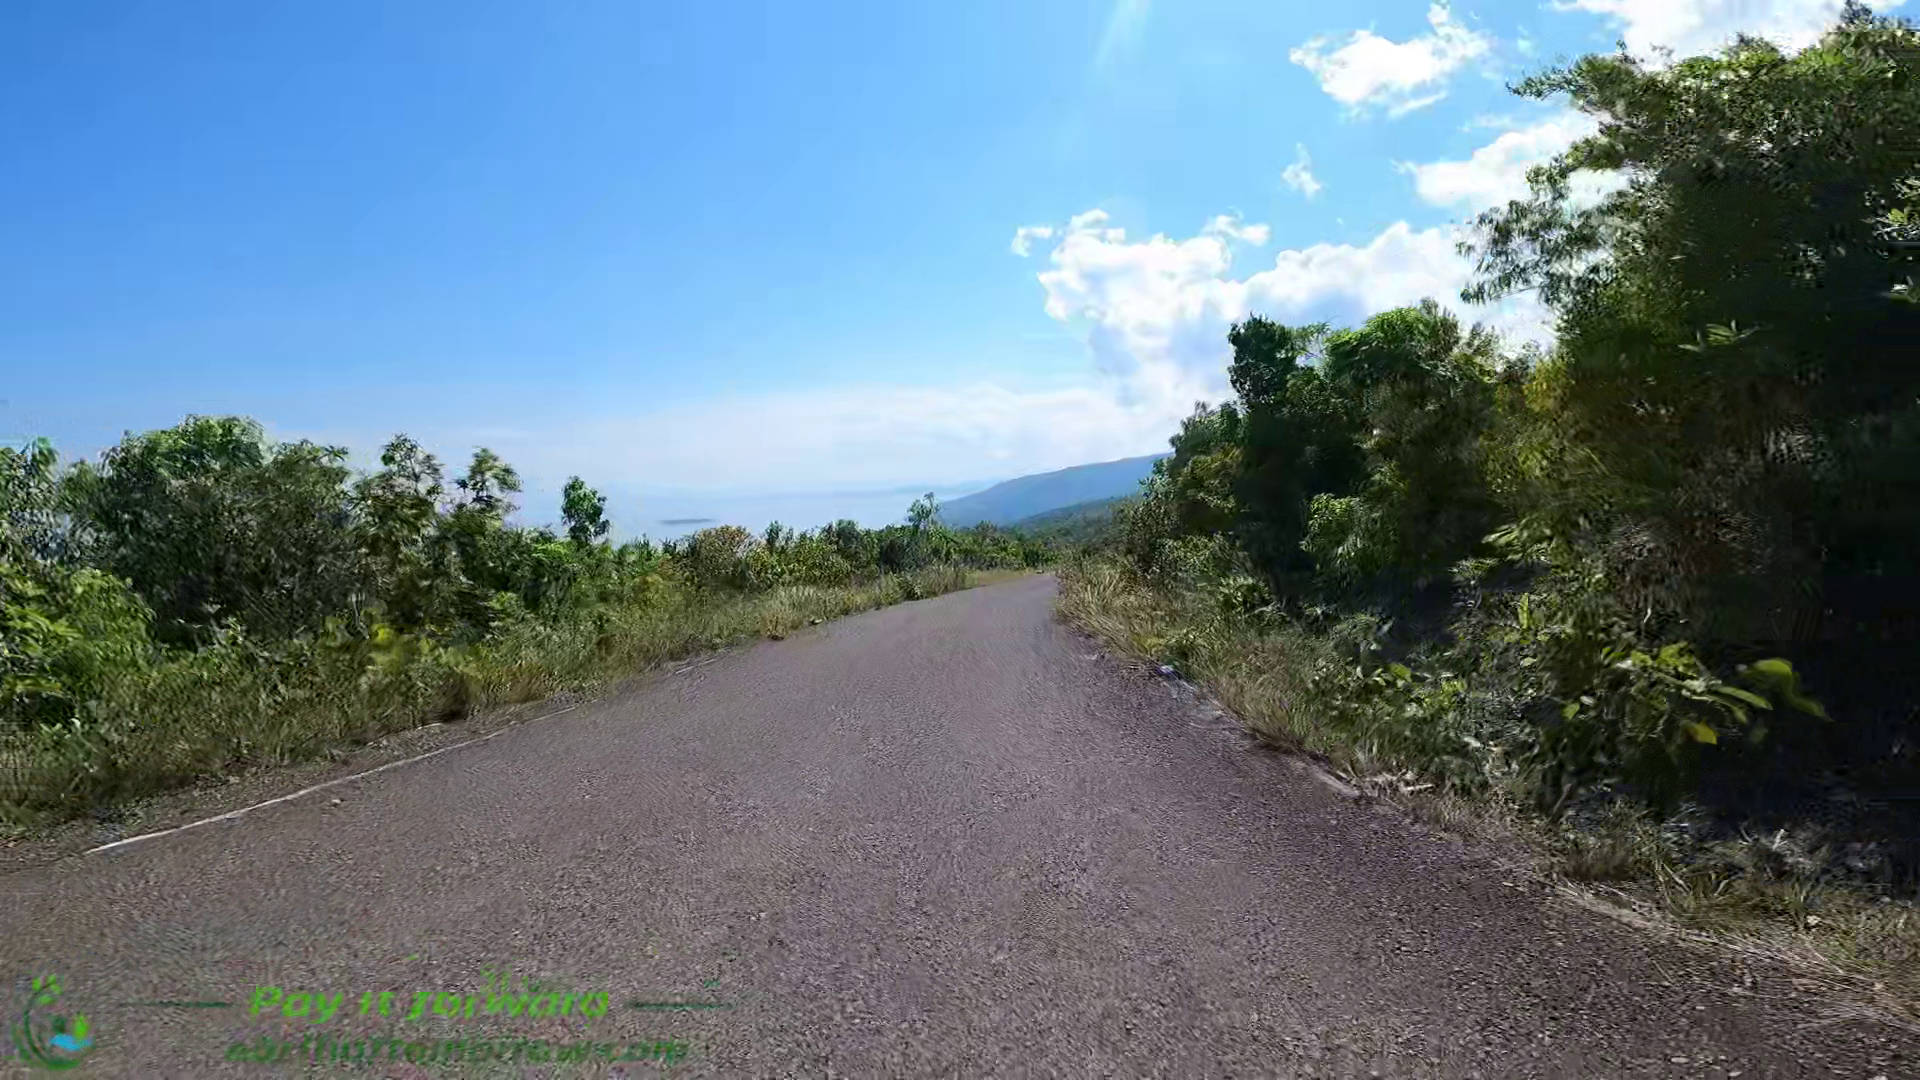 driving form ginatilan mountain to oslob